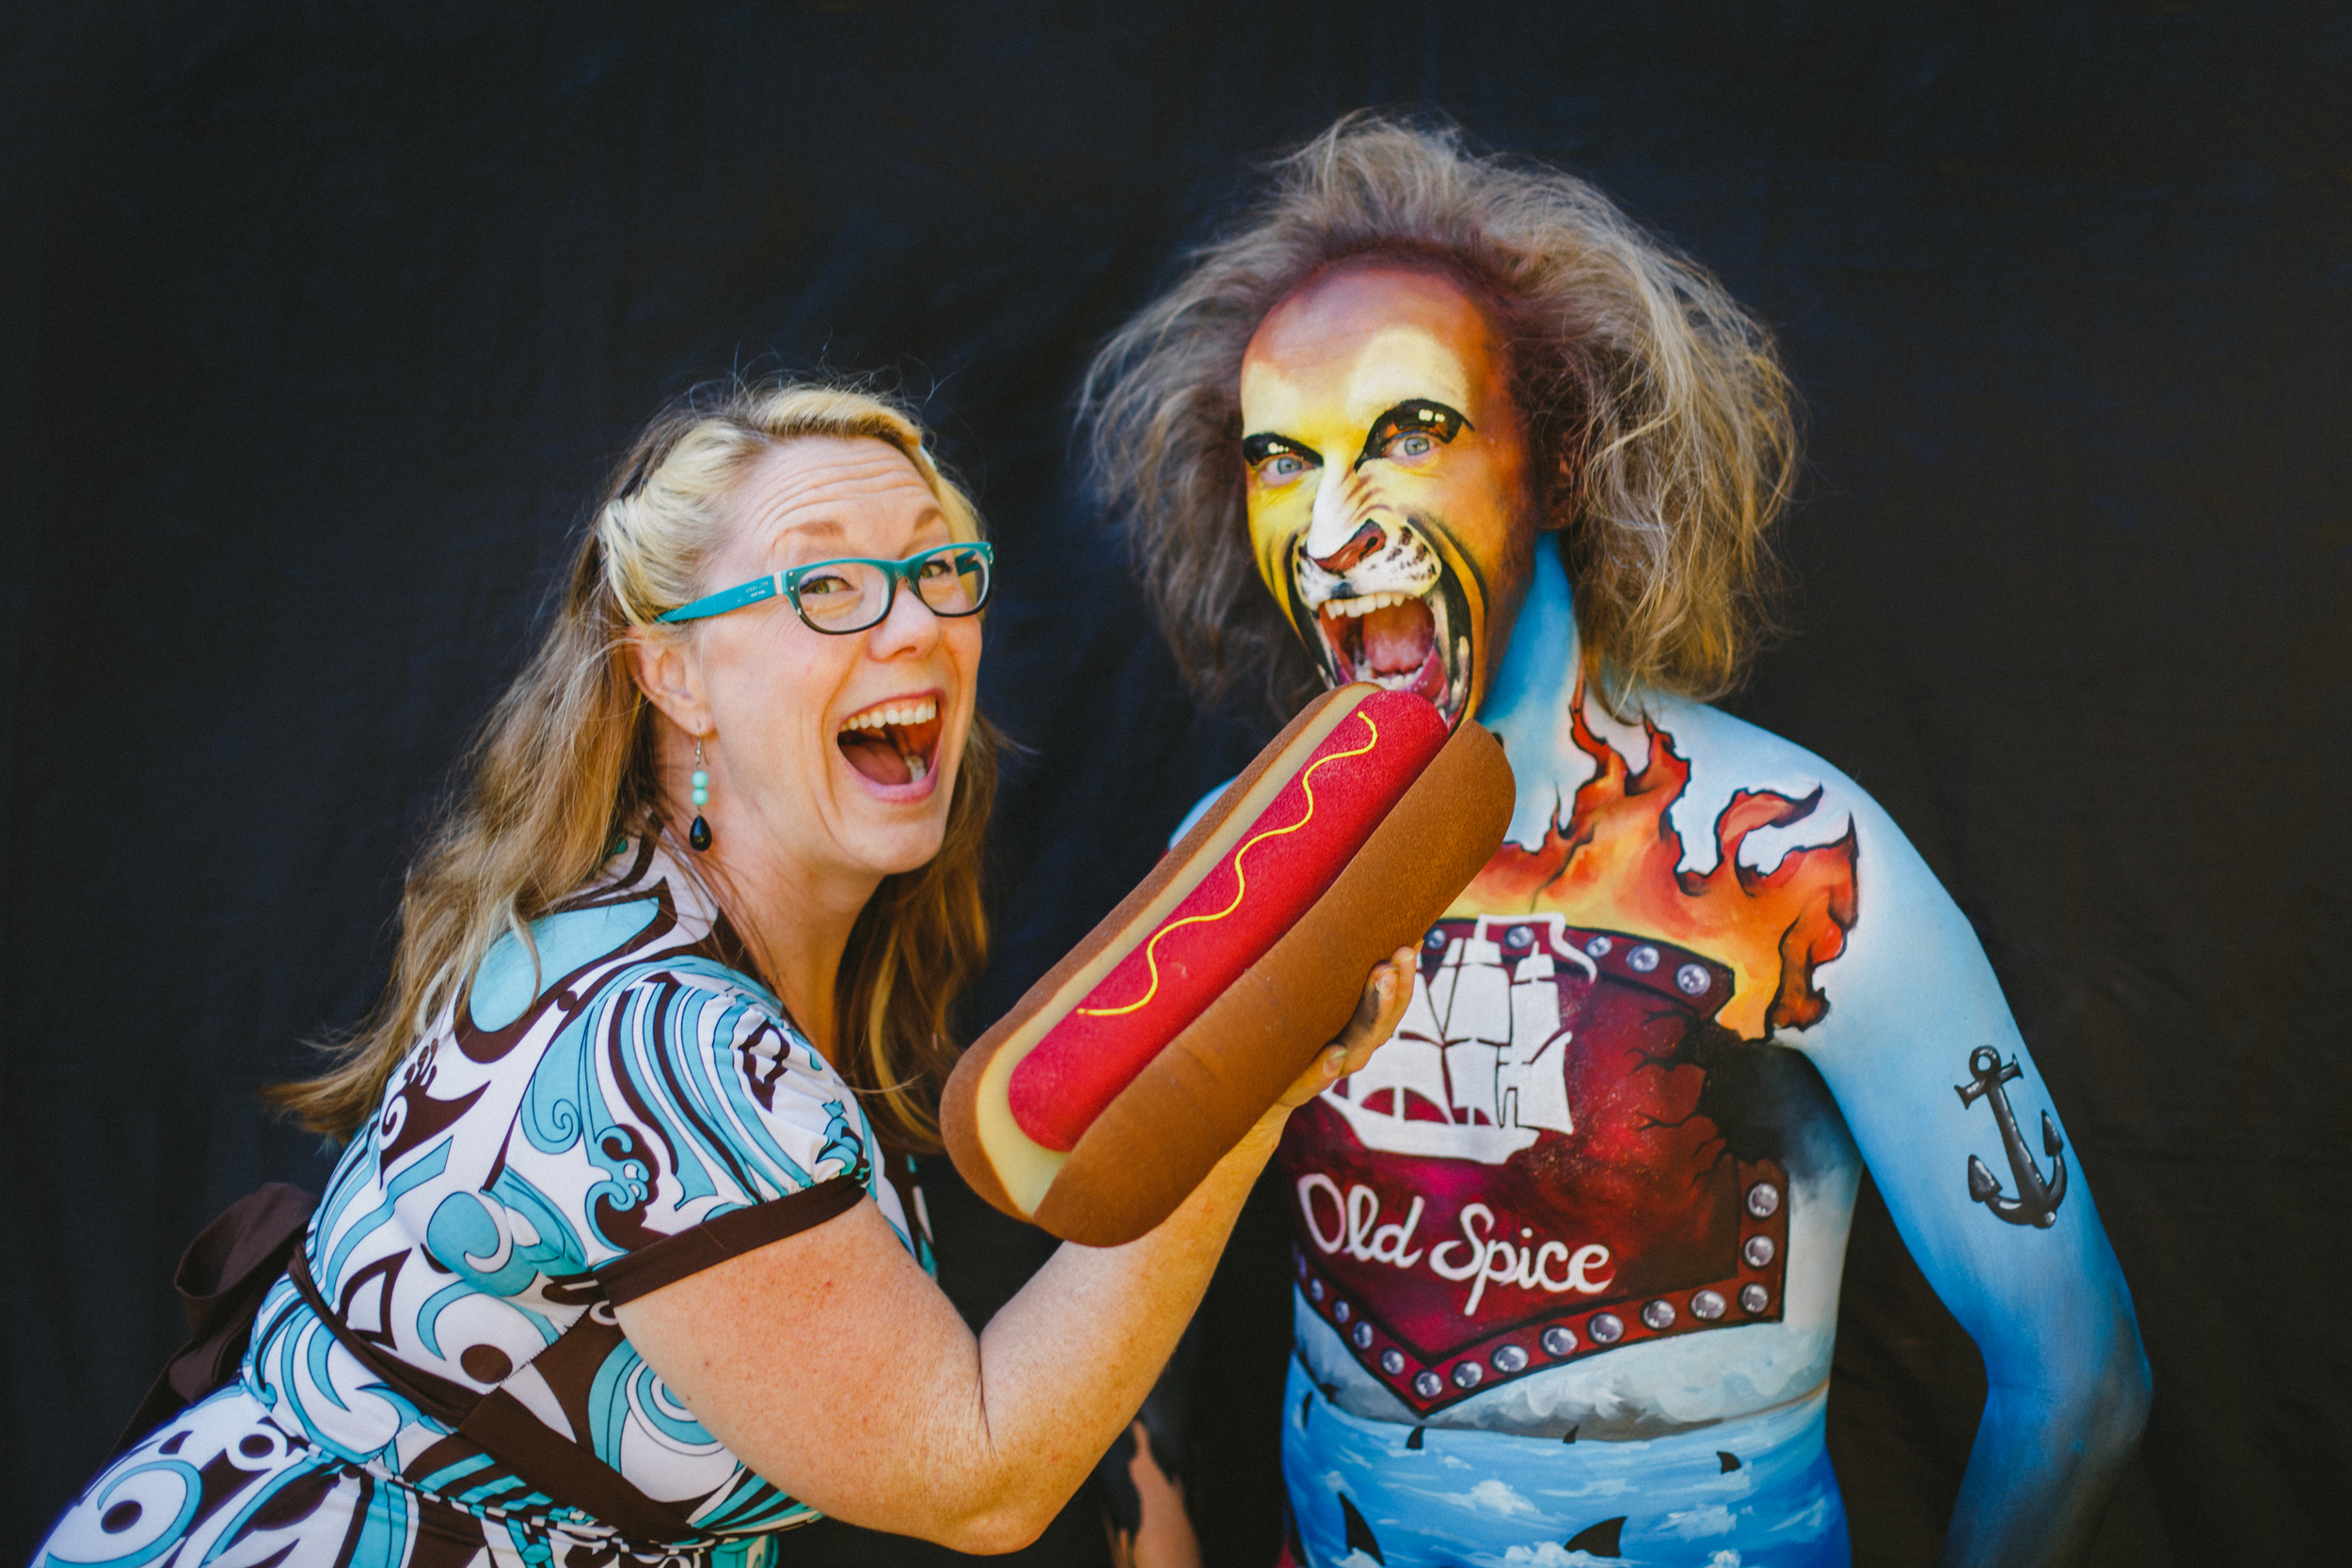 Alison Kenyon with her body art masterpiece inspired by Old Spice Lion Pride. Roar!